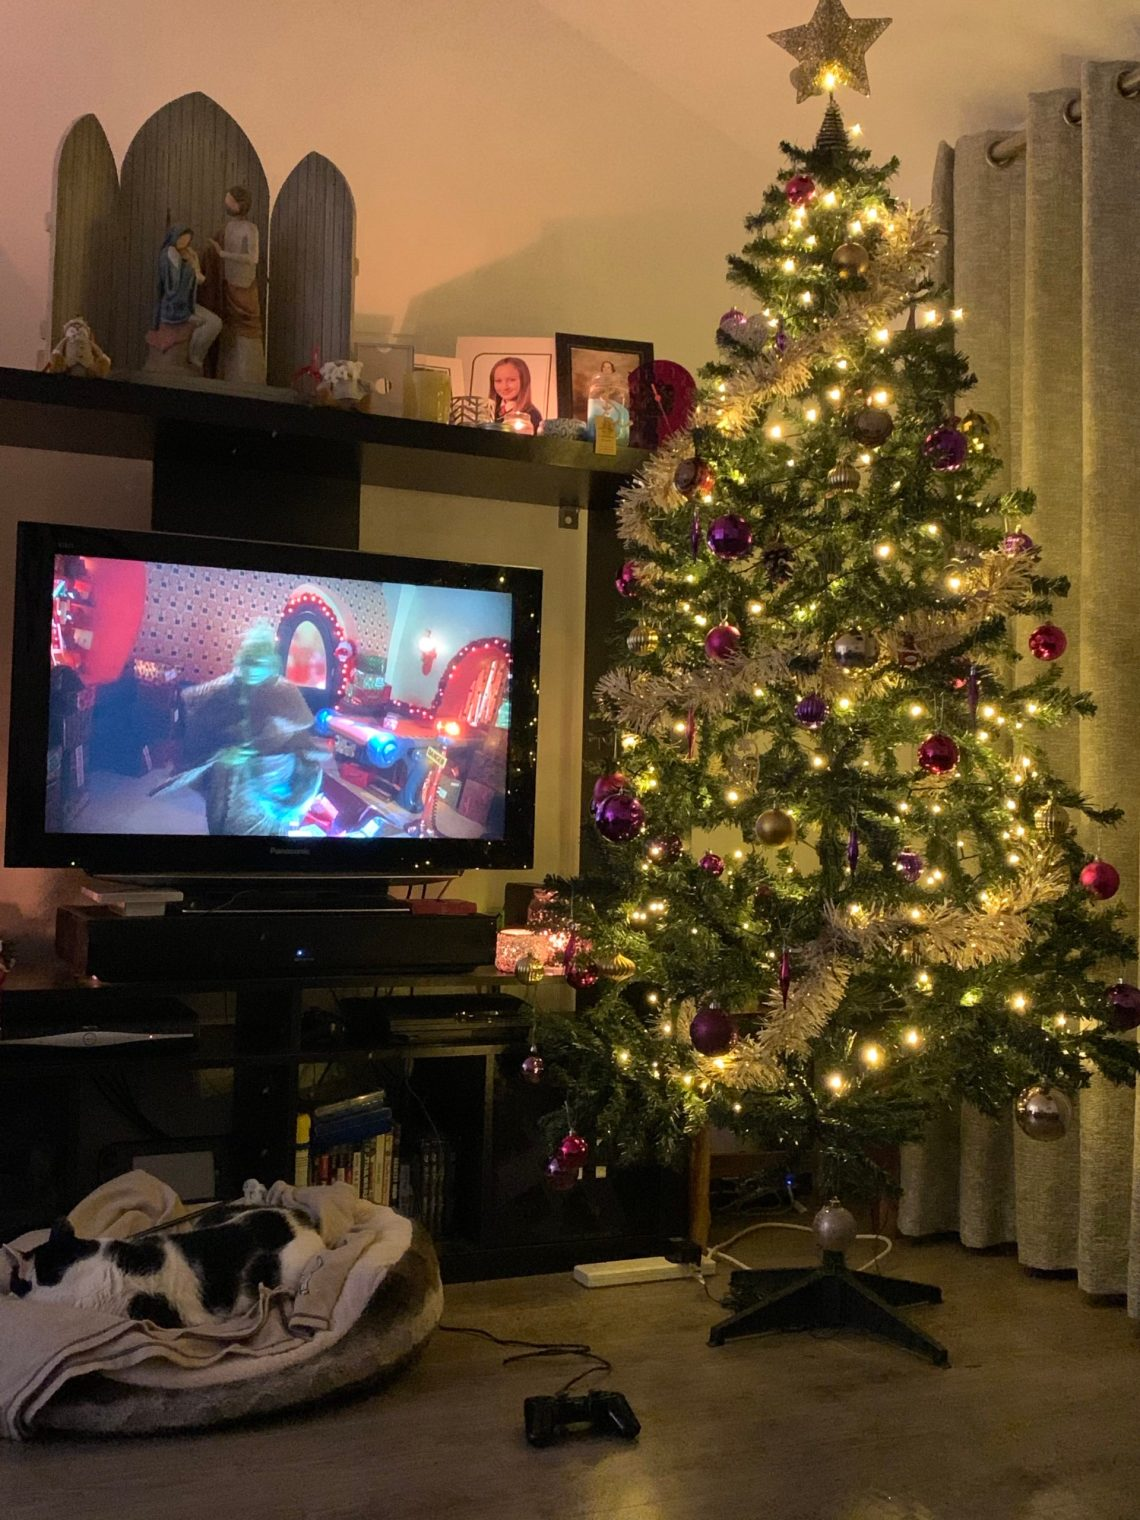 picture shows Christmas tree